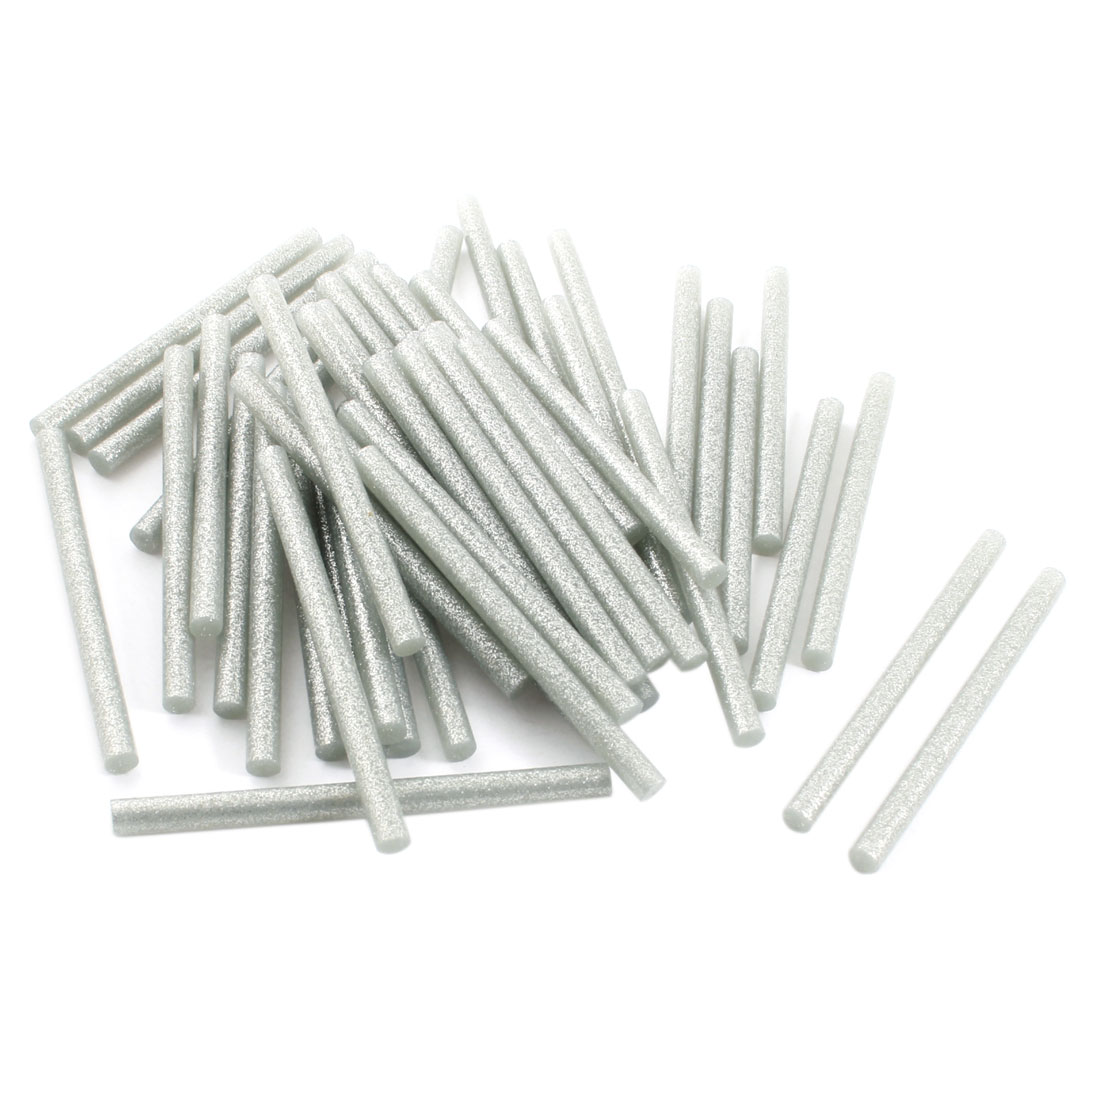 50Pcs 7mm x 100mm Silver Tone Giltter Hot Melt Glue Adhesive Sticks for Electric Tool Heating Gun